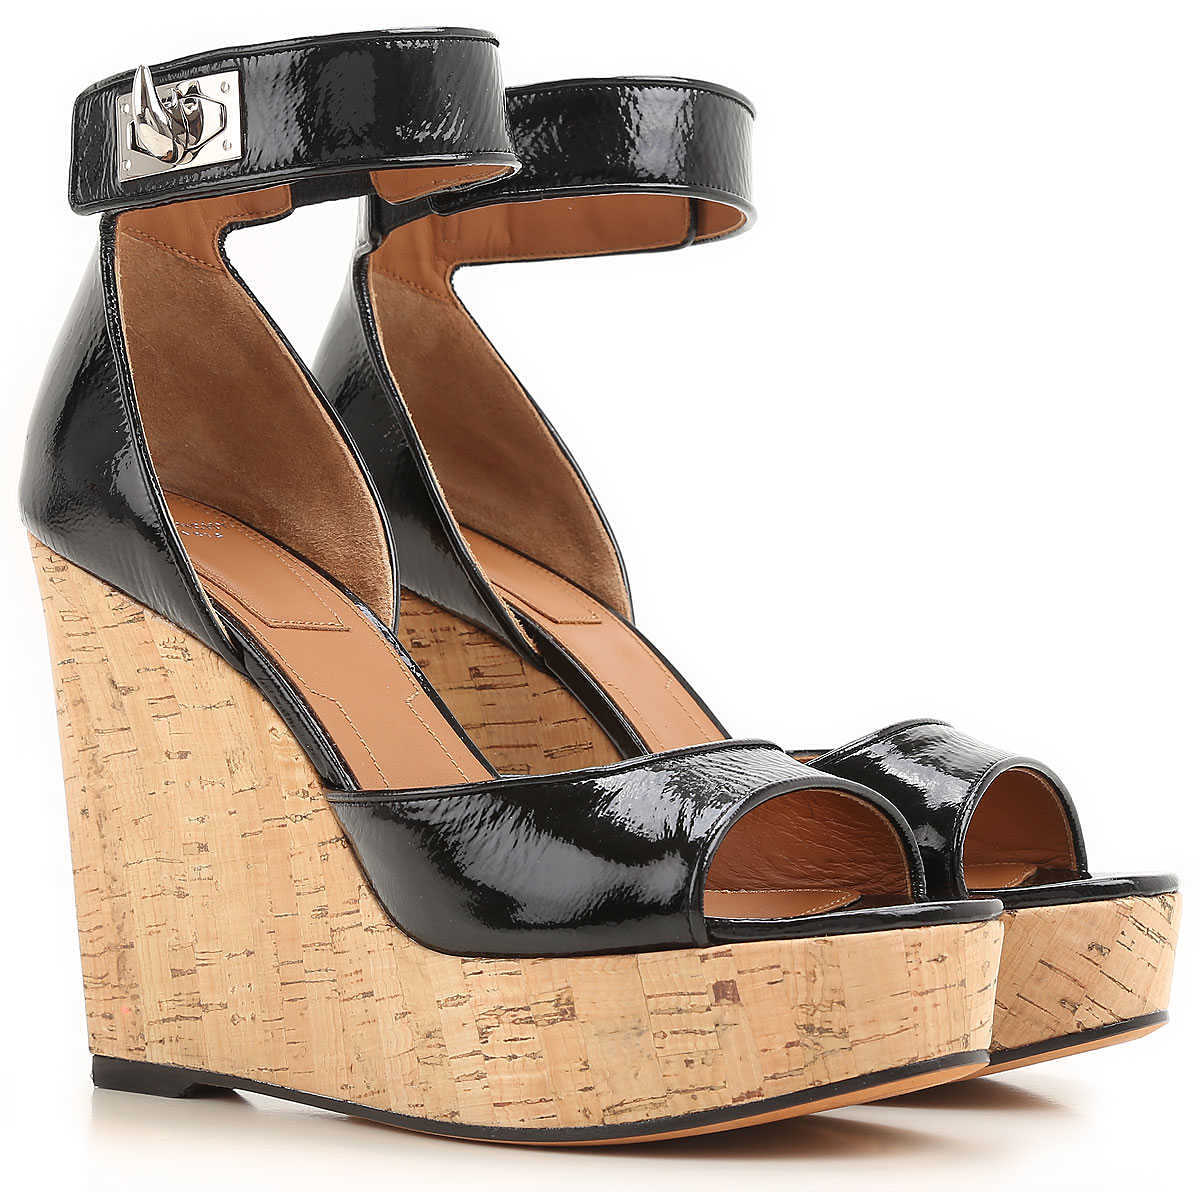 Givenchy Wedges for Women in Outlet Black Canada - GOOFASH - Womens HOUSE SHOES